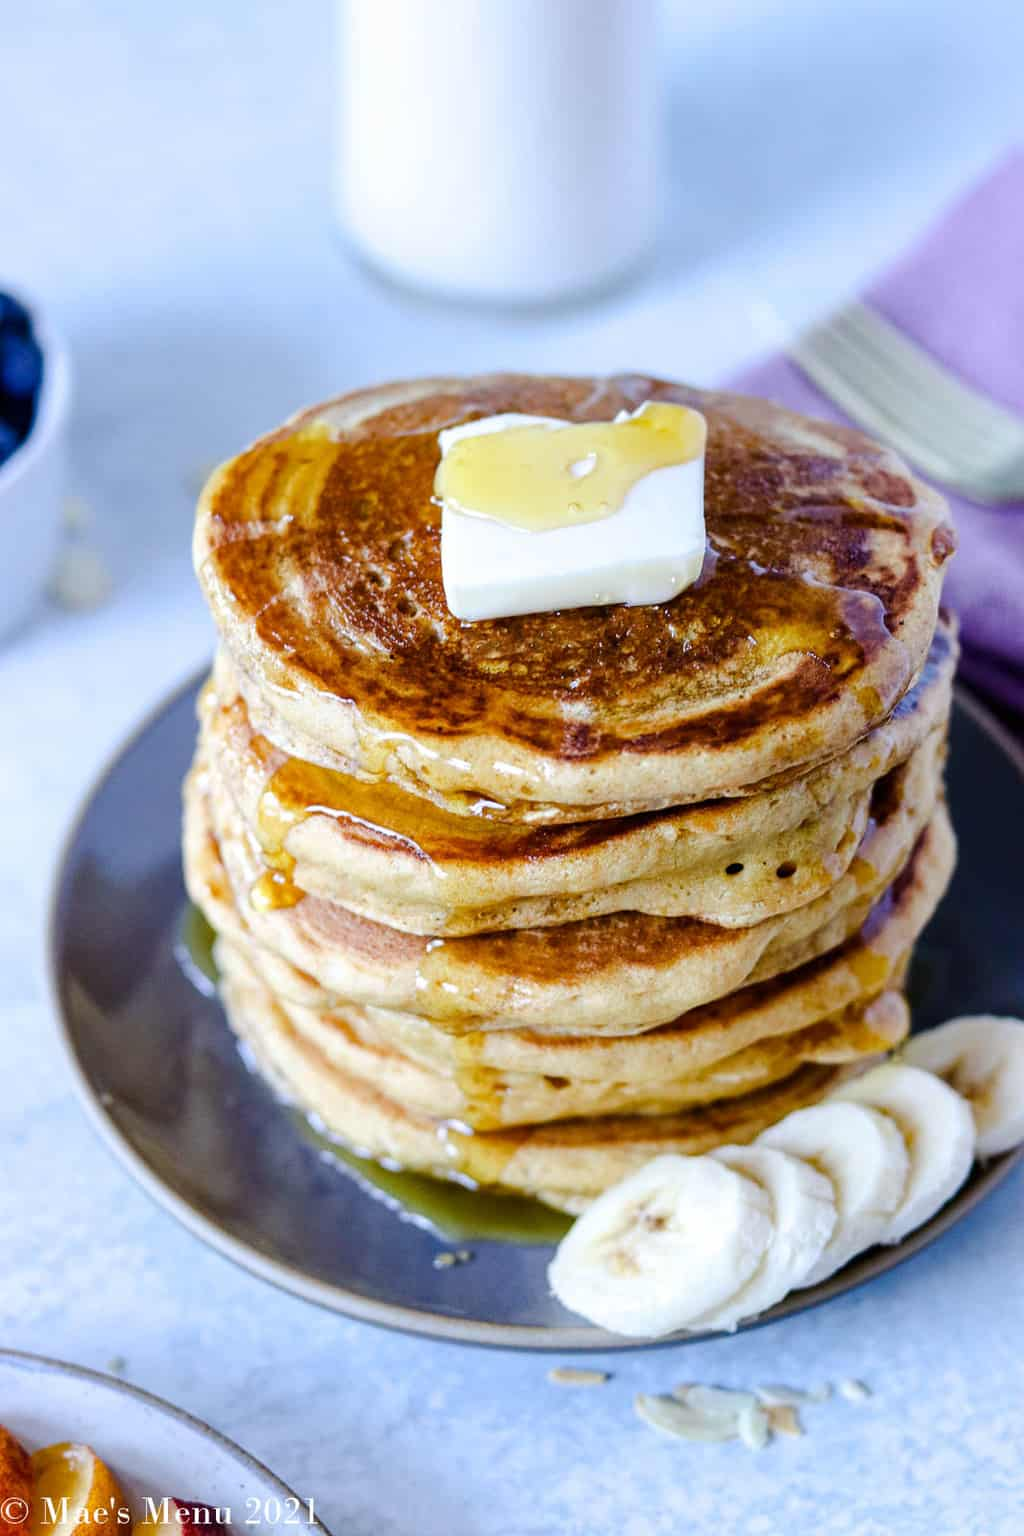 An elevated shot of a stack of pancakes with butter and bananas